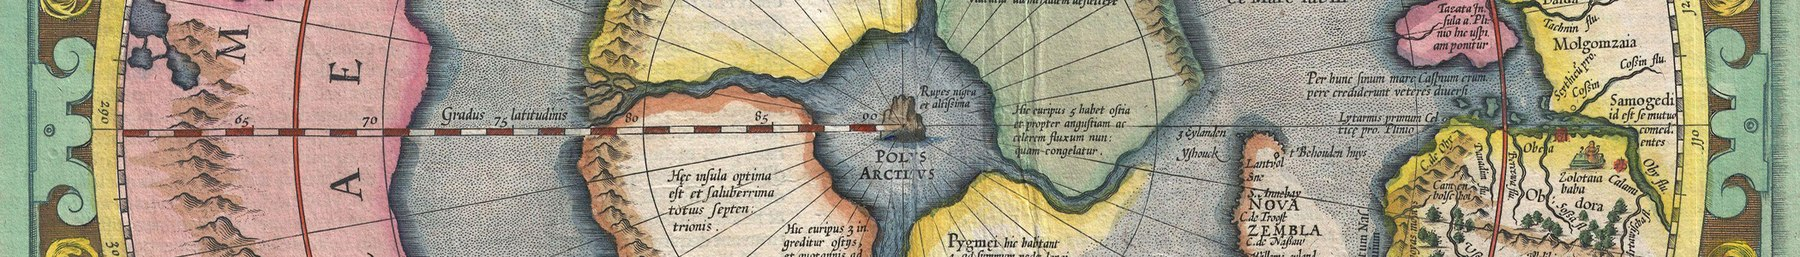 Gerard Mercator's map of the North Pole or Arctic